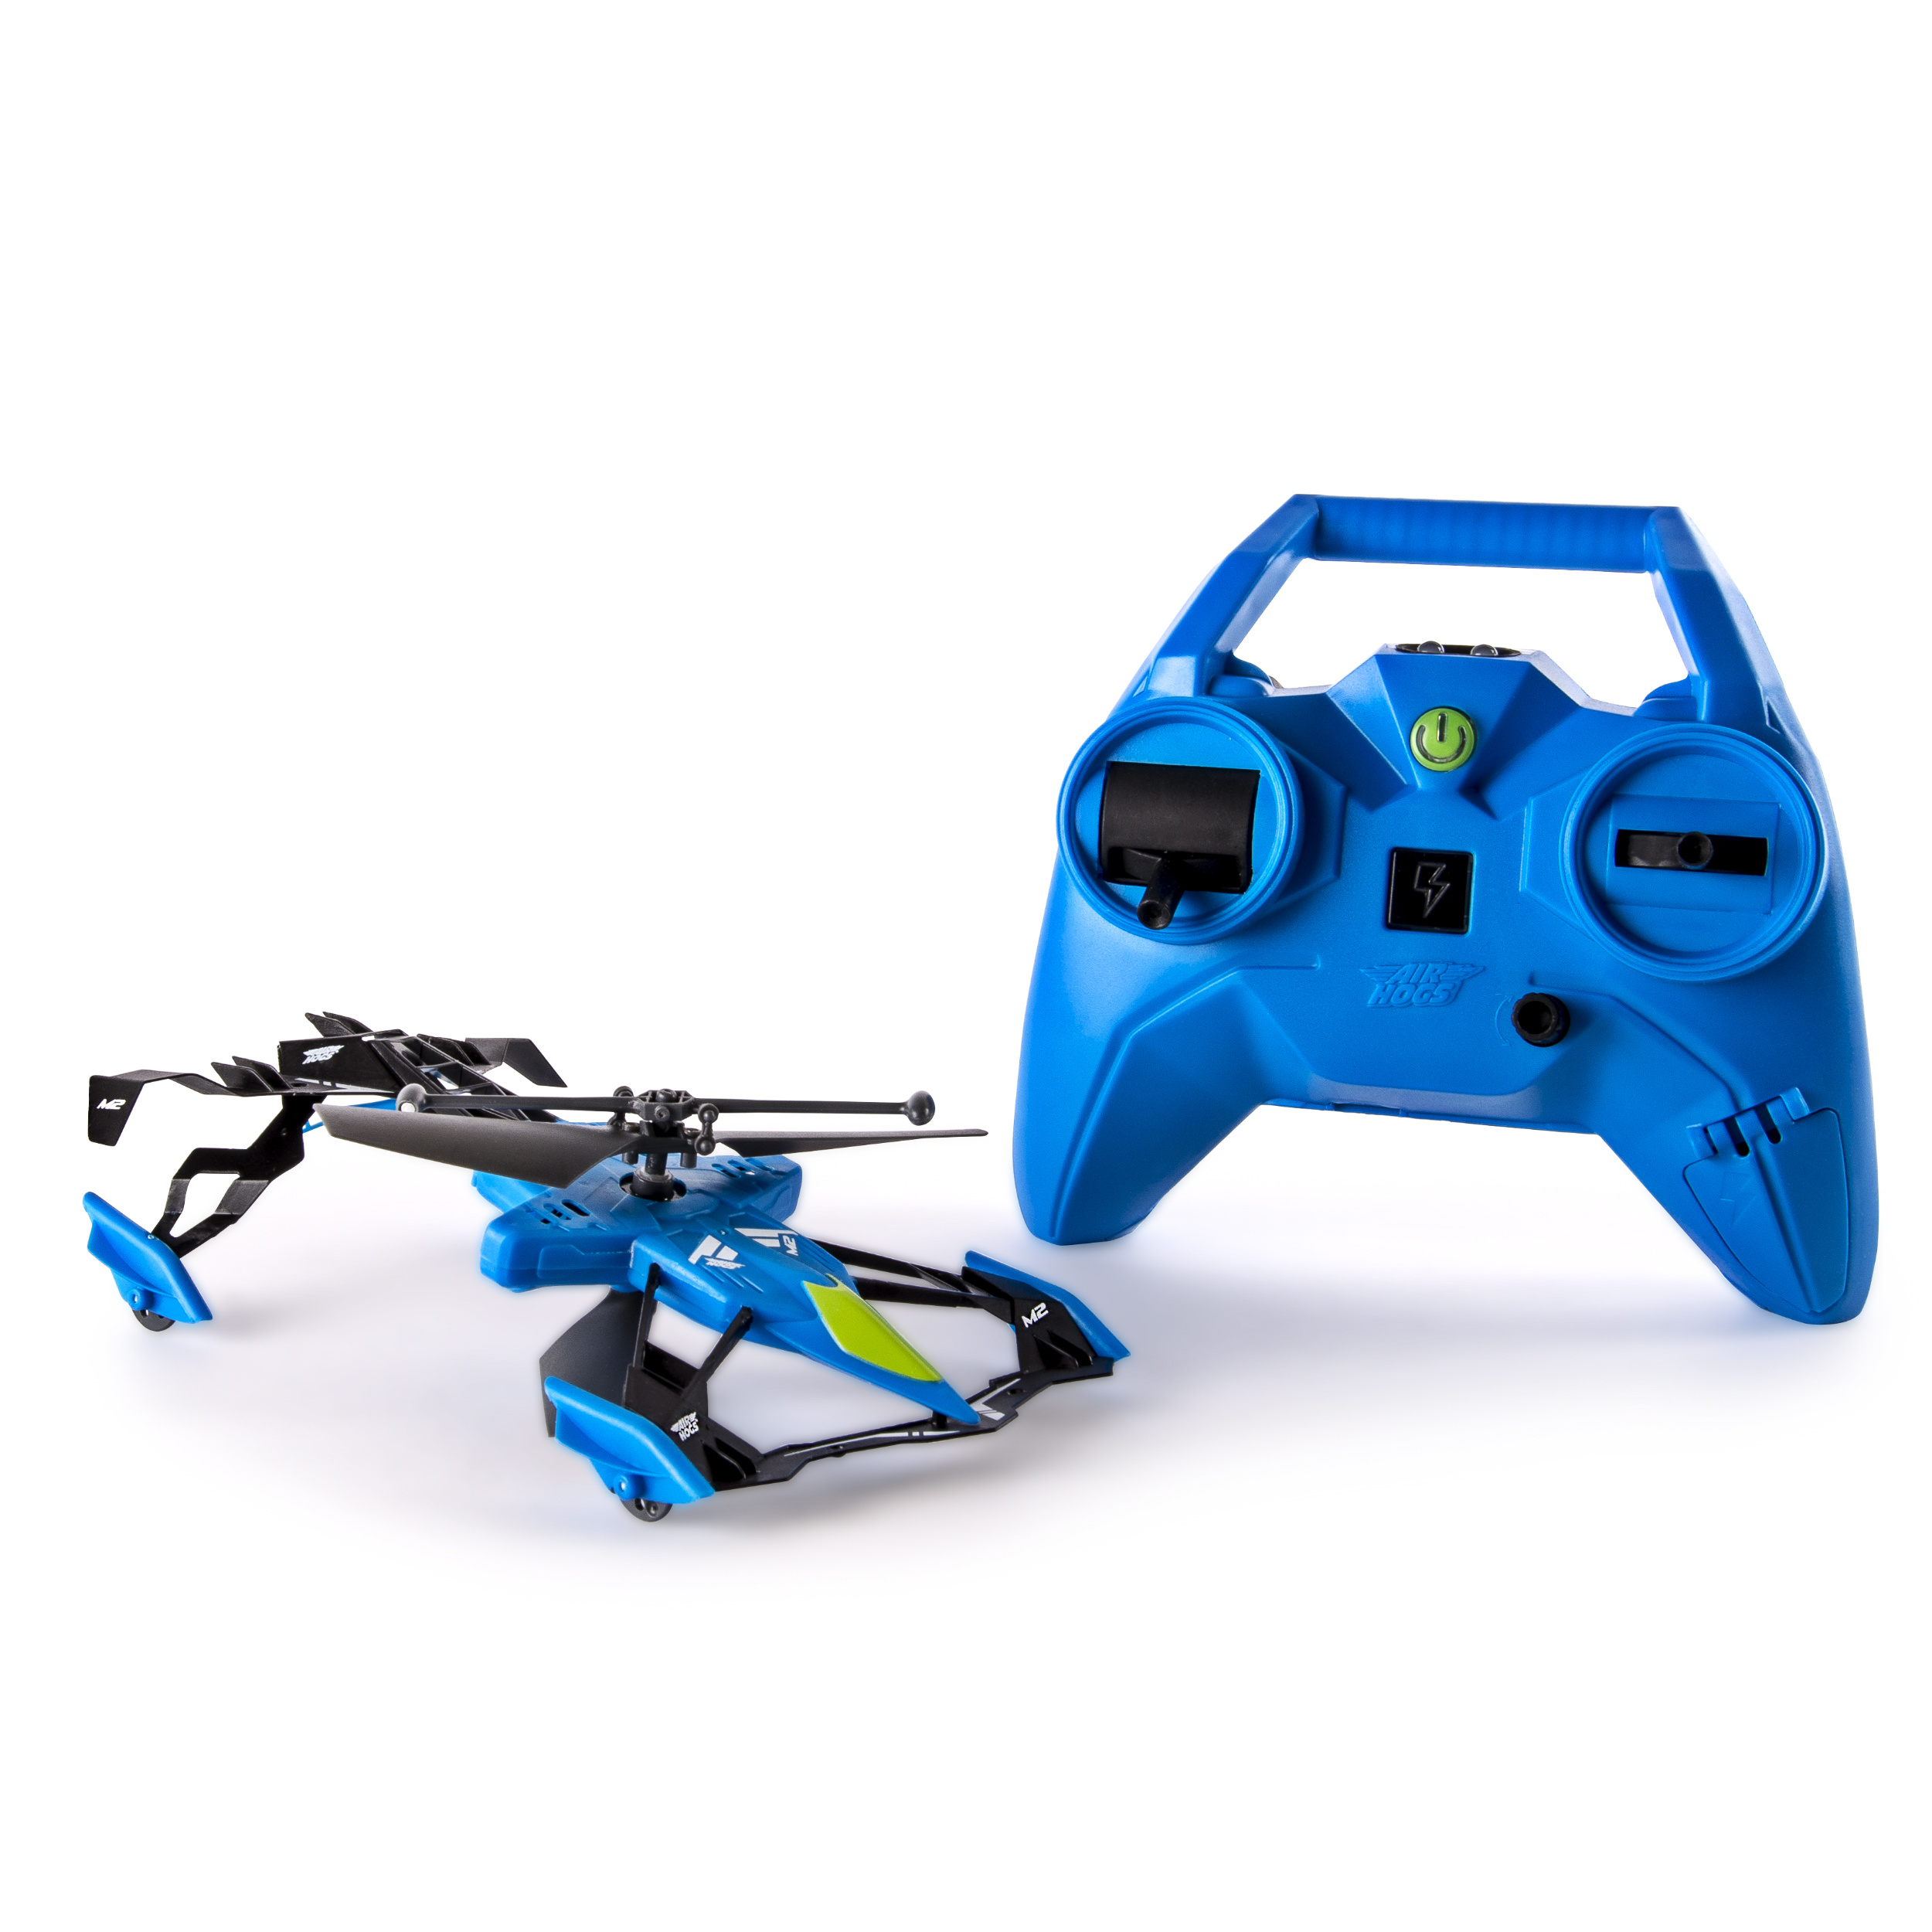 helix rc helicopter with Air Hogs Switchblade Ground Air Race Rc Heli Blue on 7M7k further Helicopter cards in addition Mc Helicopter Mod additionally 351273841961 also Dropship Hubsan H501s X4 5 8g Fpv 10ch Brushless With 1080p Hd Camera Gps Rc Quadcopter 1586725 P.